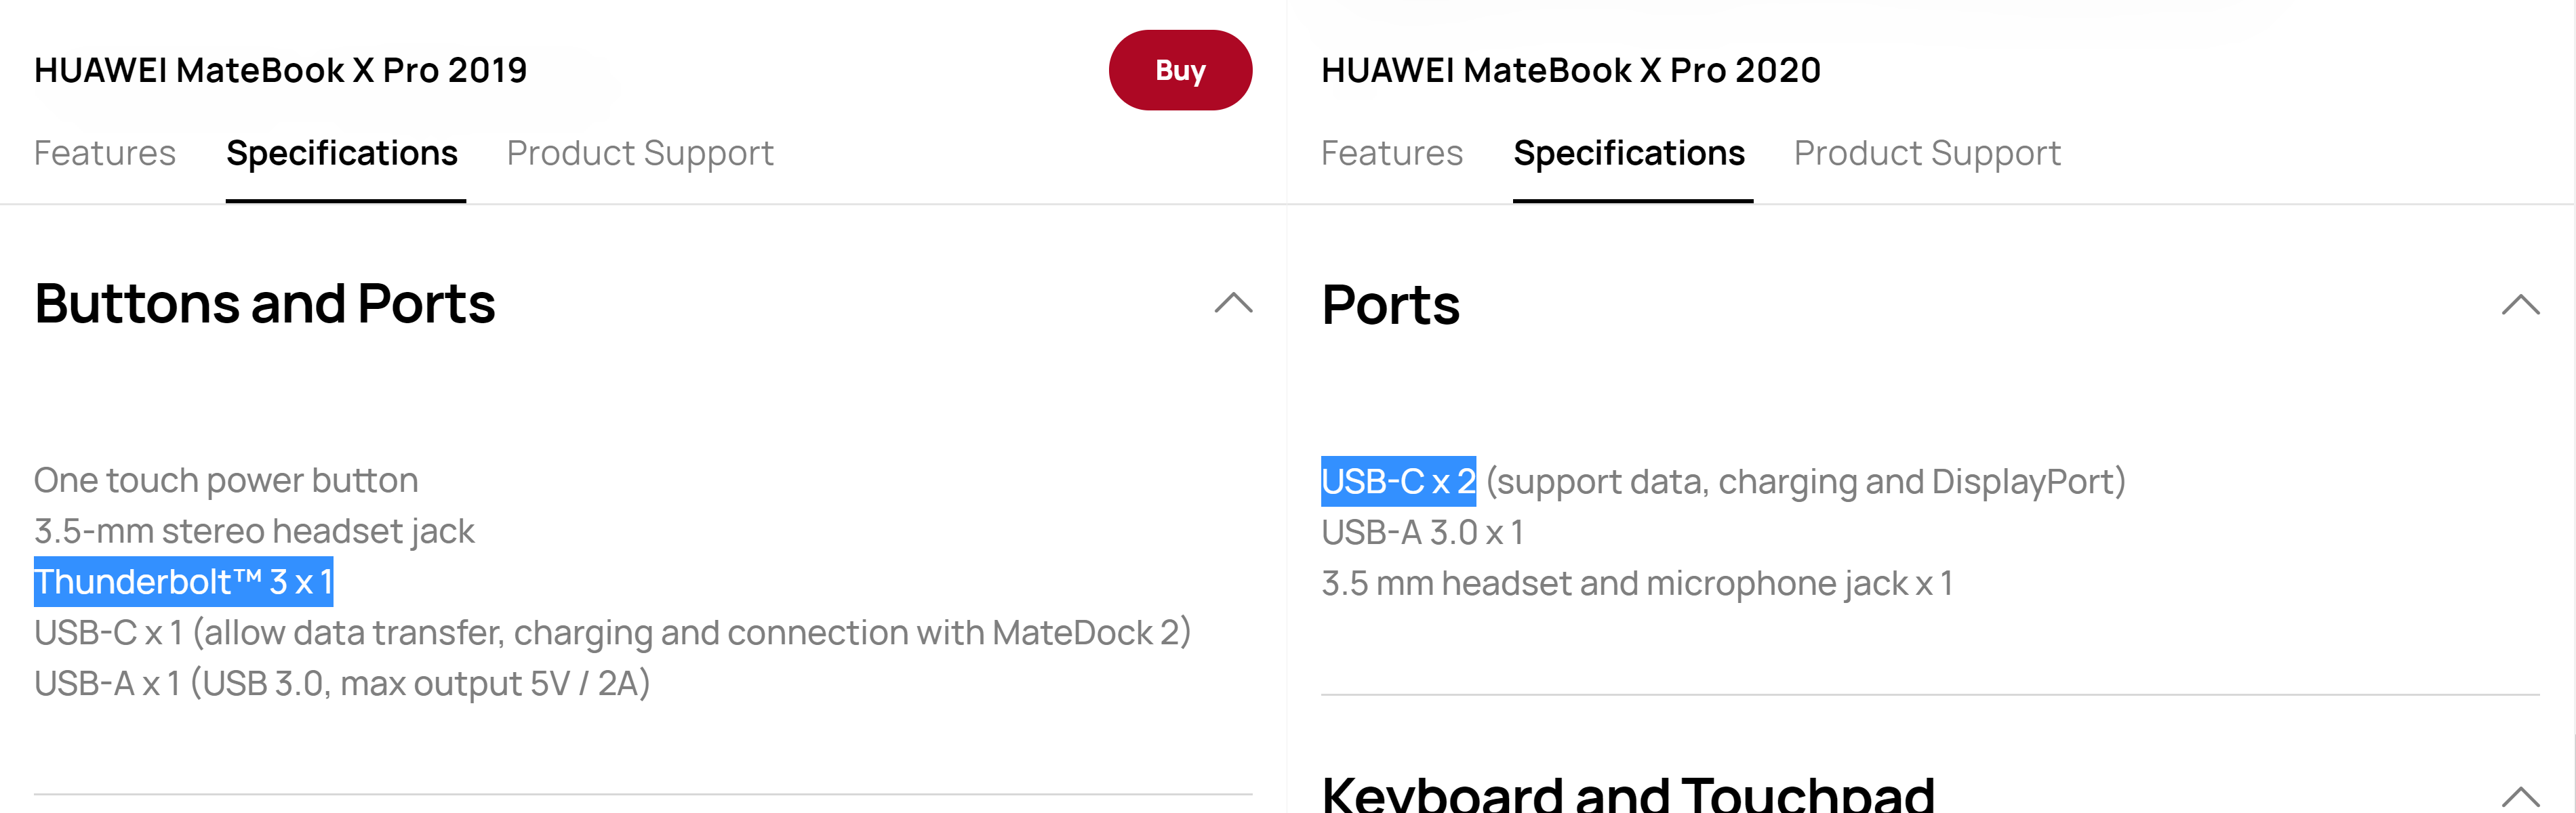 Comparison of the ports specifications on Huawei's website.